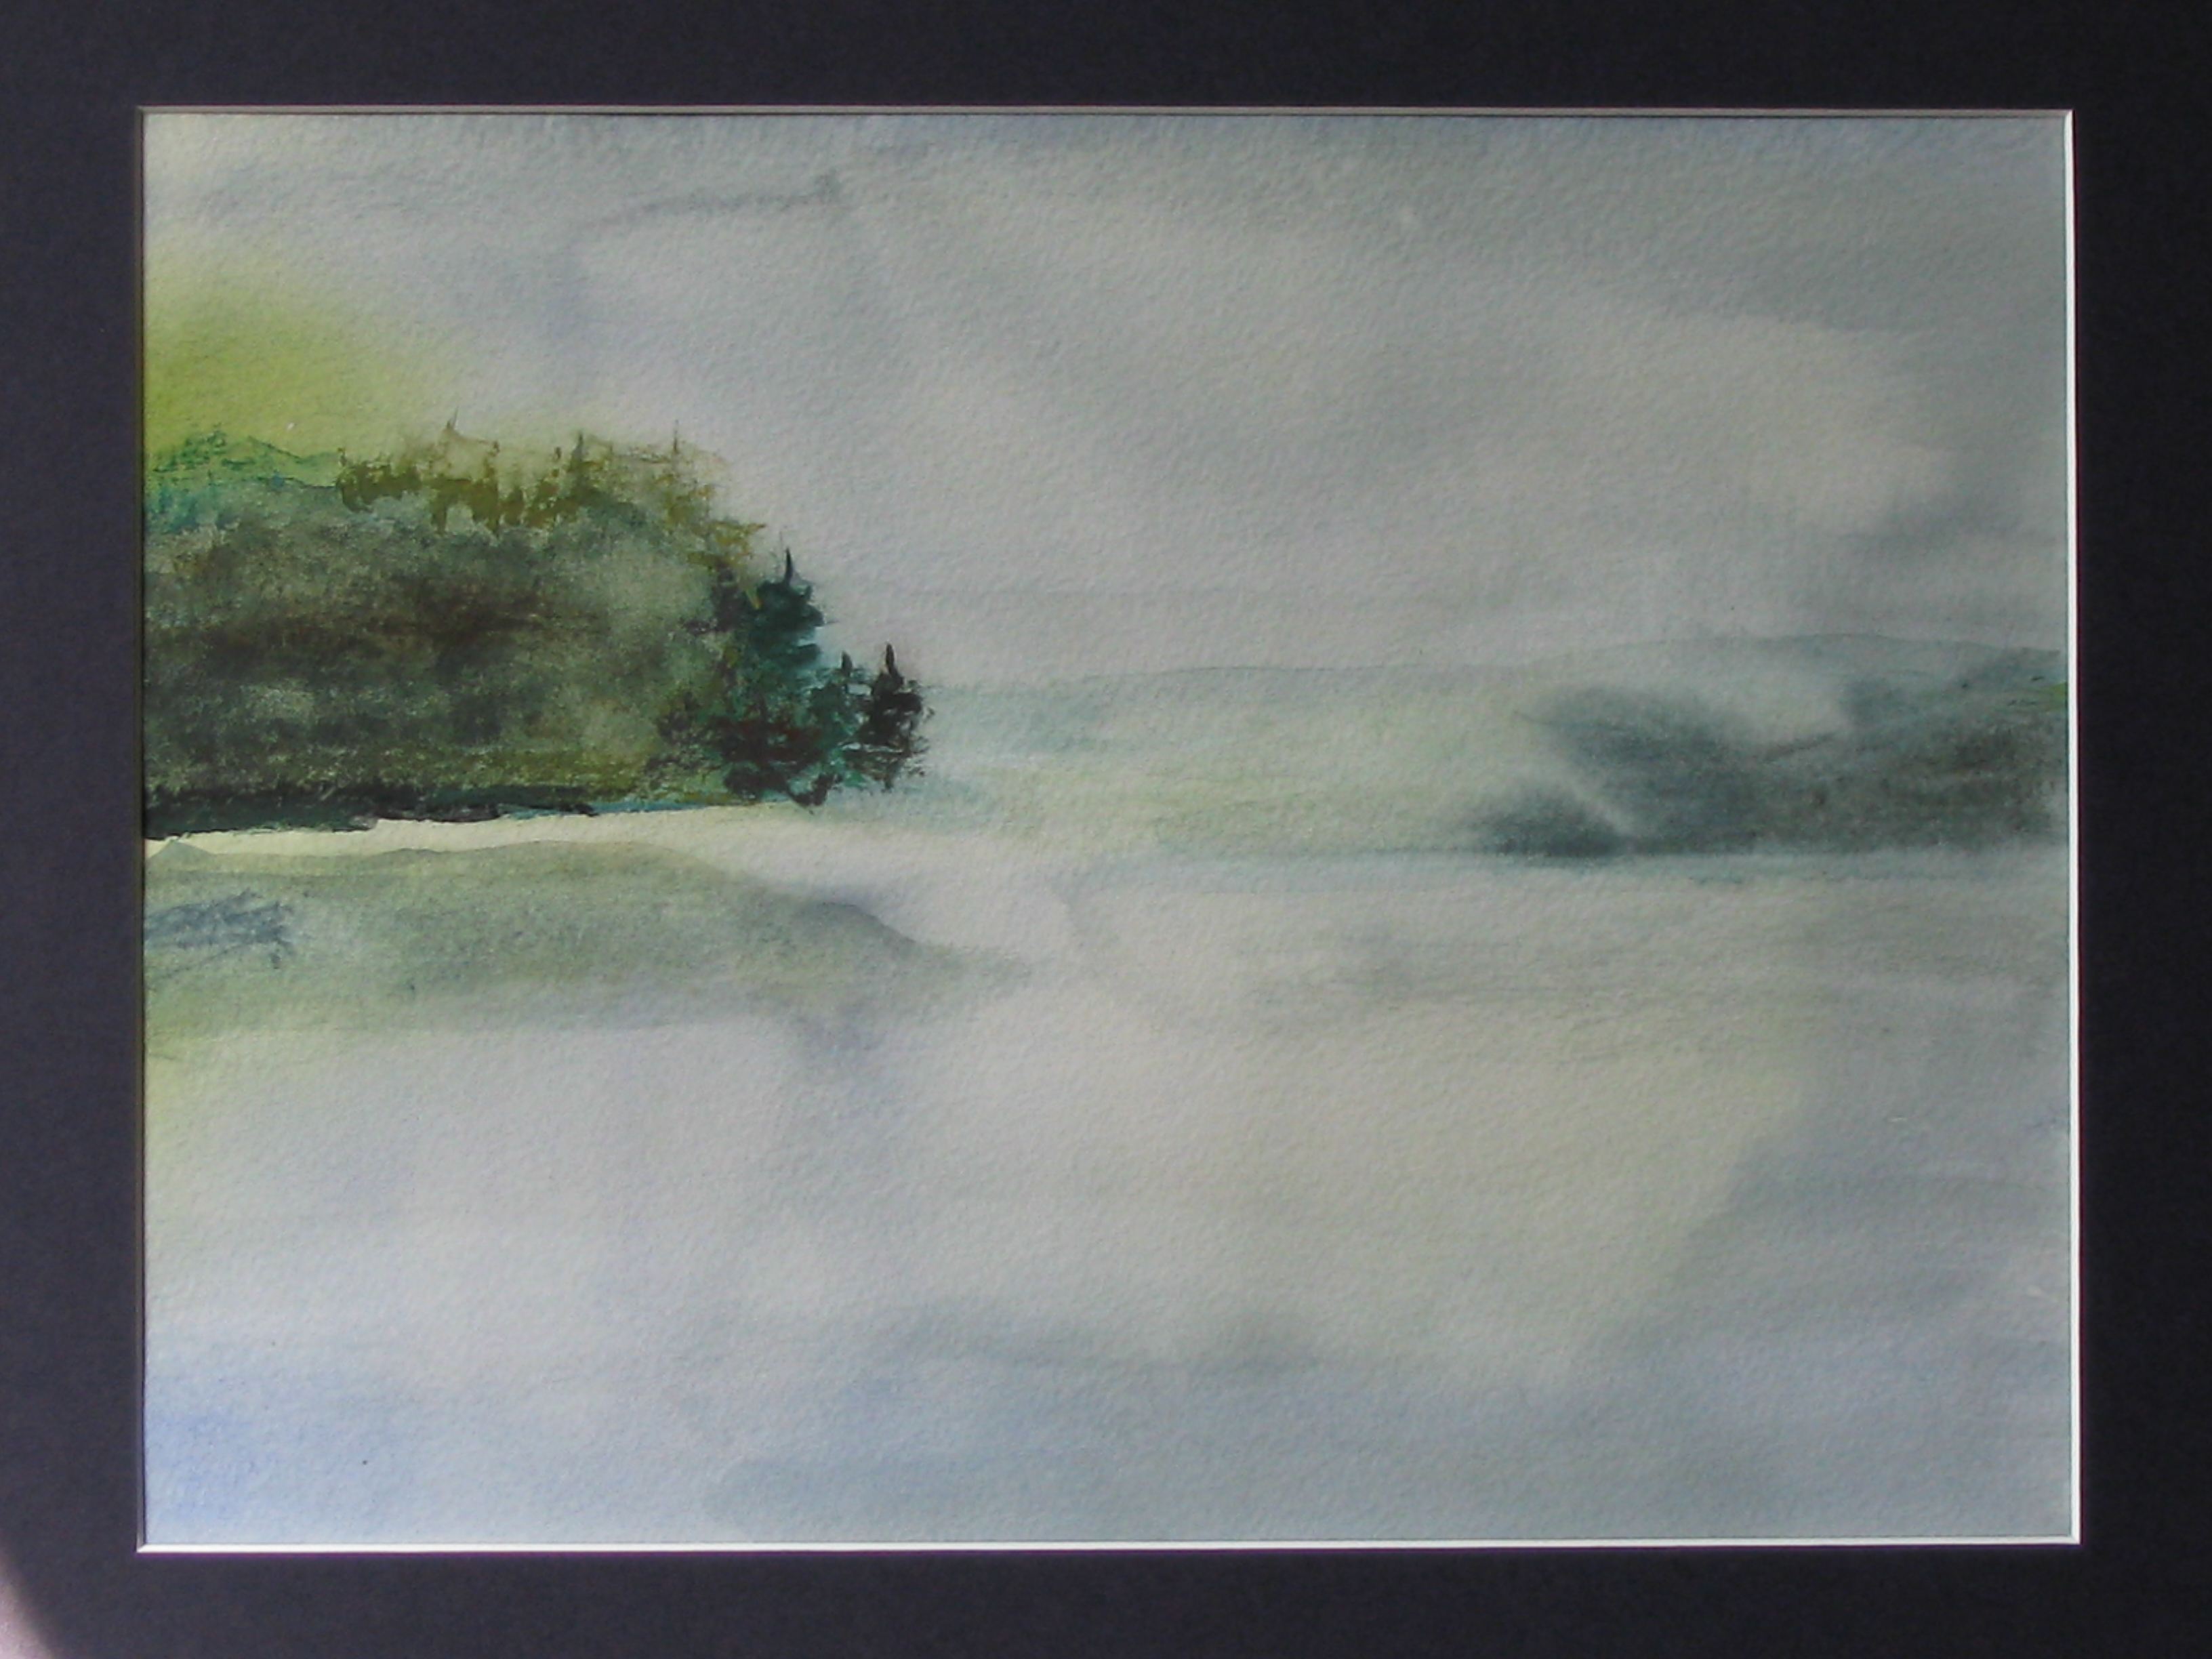 Morning Mist - Watercolor